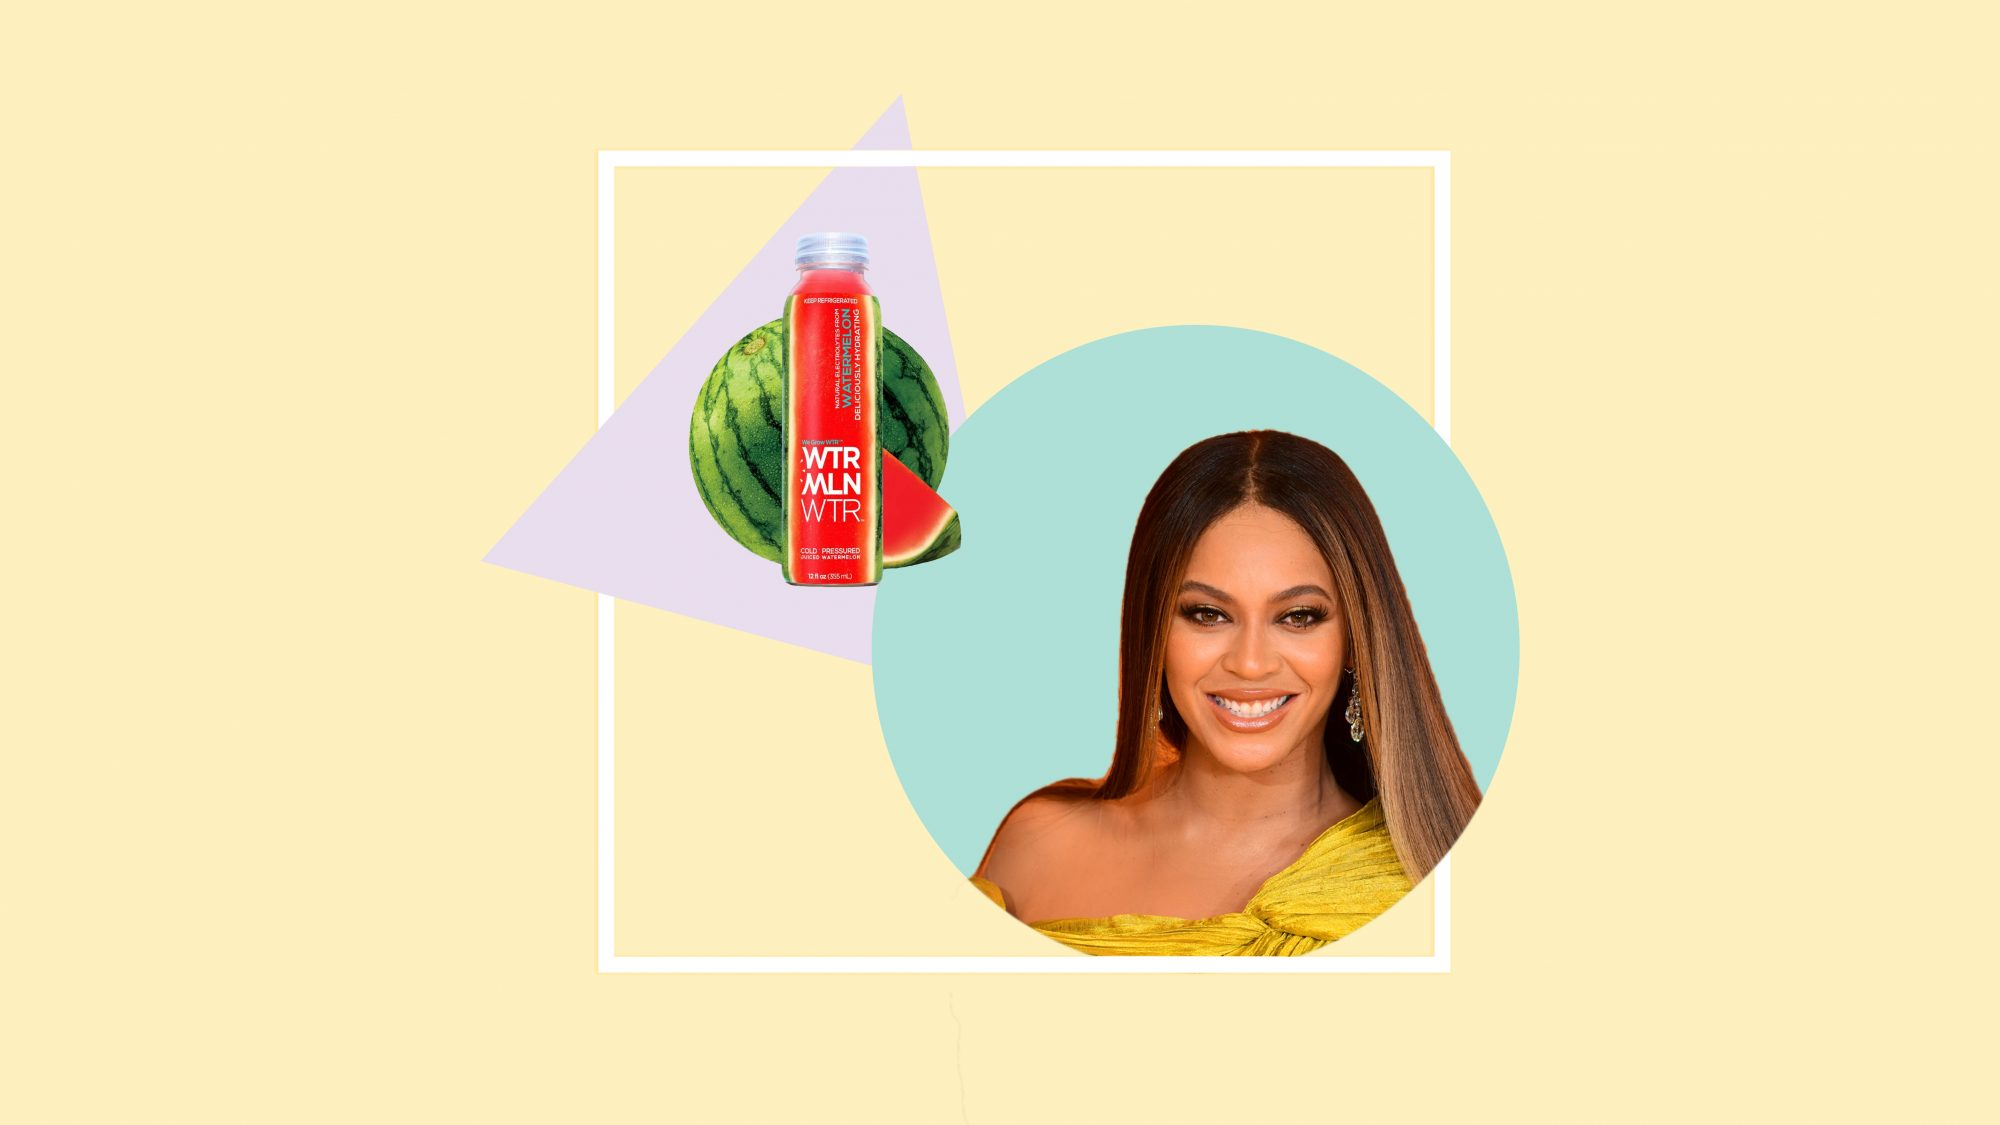 beyonce-wtrmln-wtr watermelon-water woman health wellbeing hydration watermelon water food diet beyonce